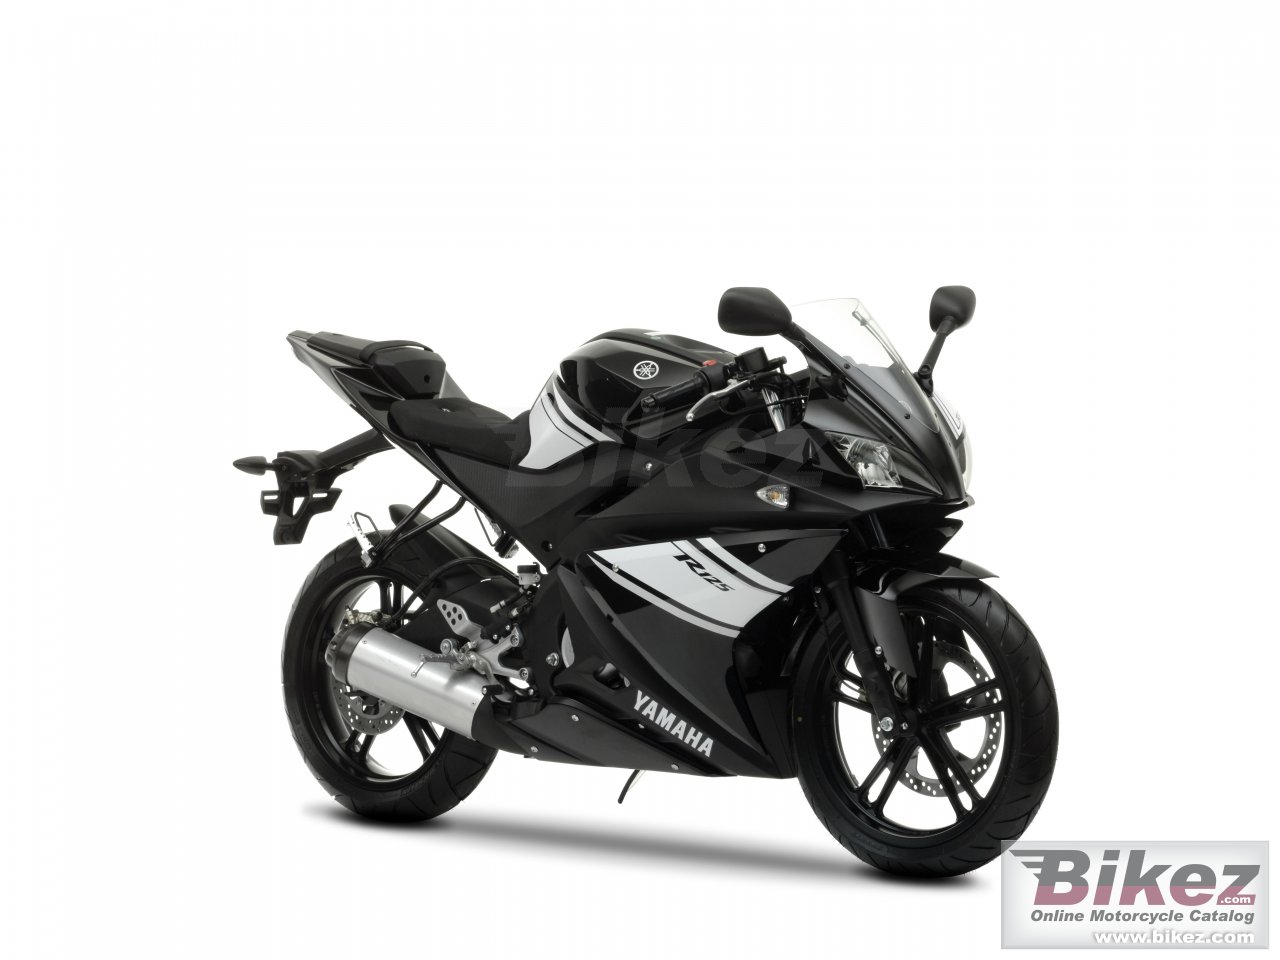 Big Yamaha yzf-r 125 picture and wallpaper from Bikez.com